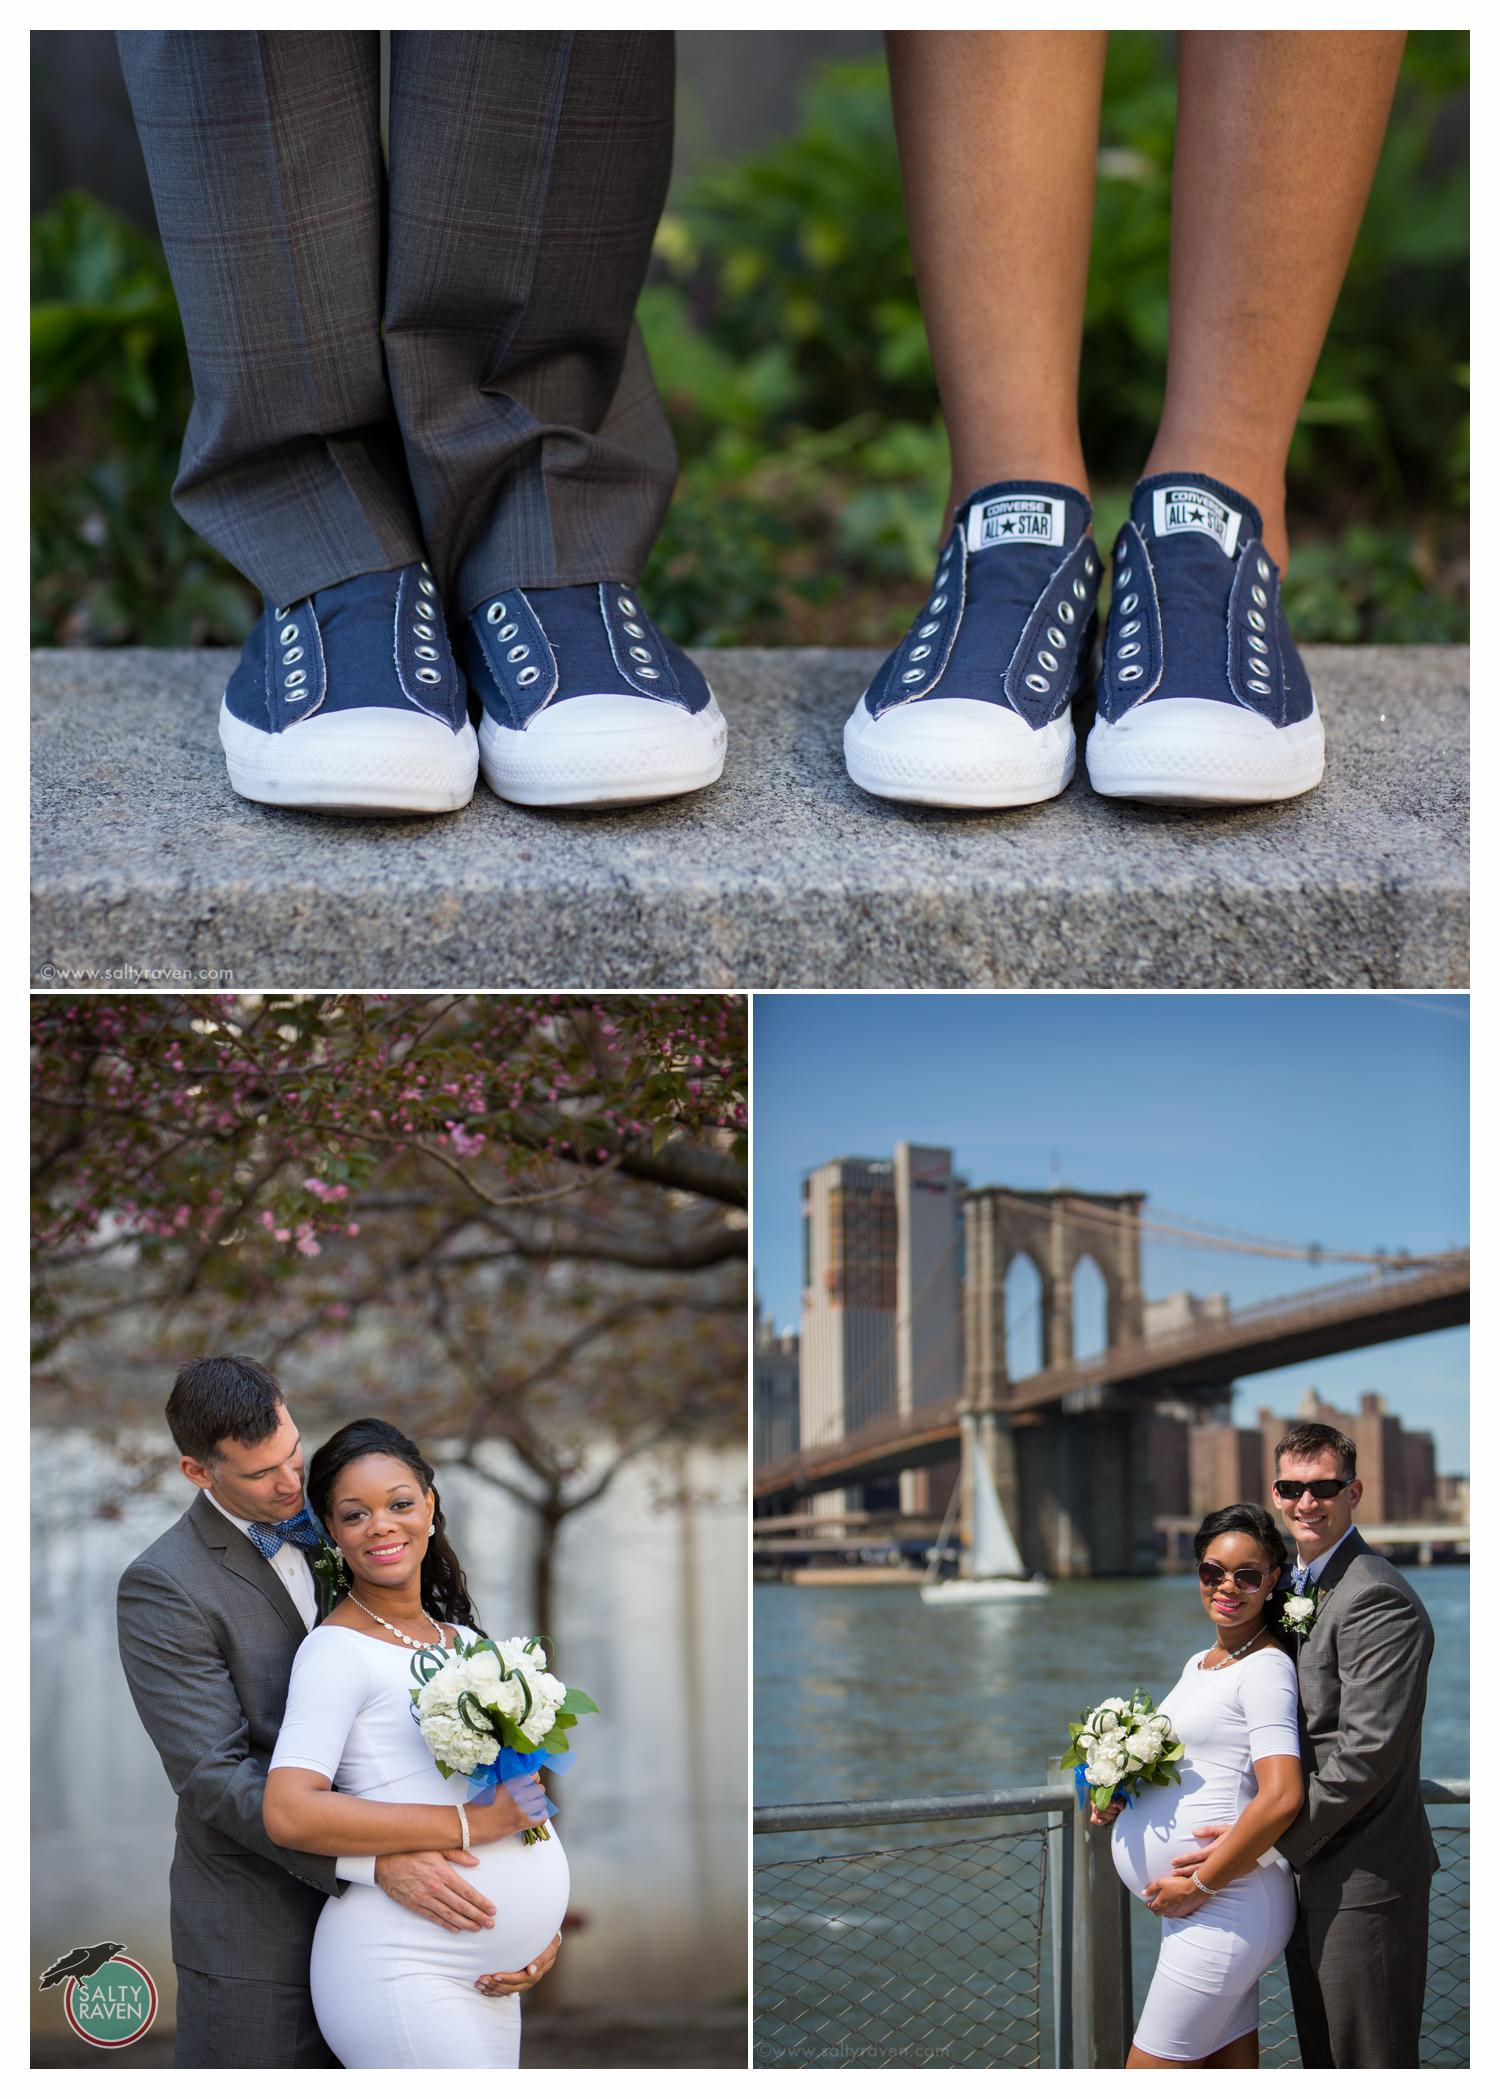 New York City Hall Wedding Photographer 21